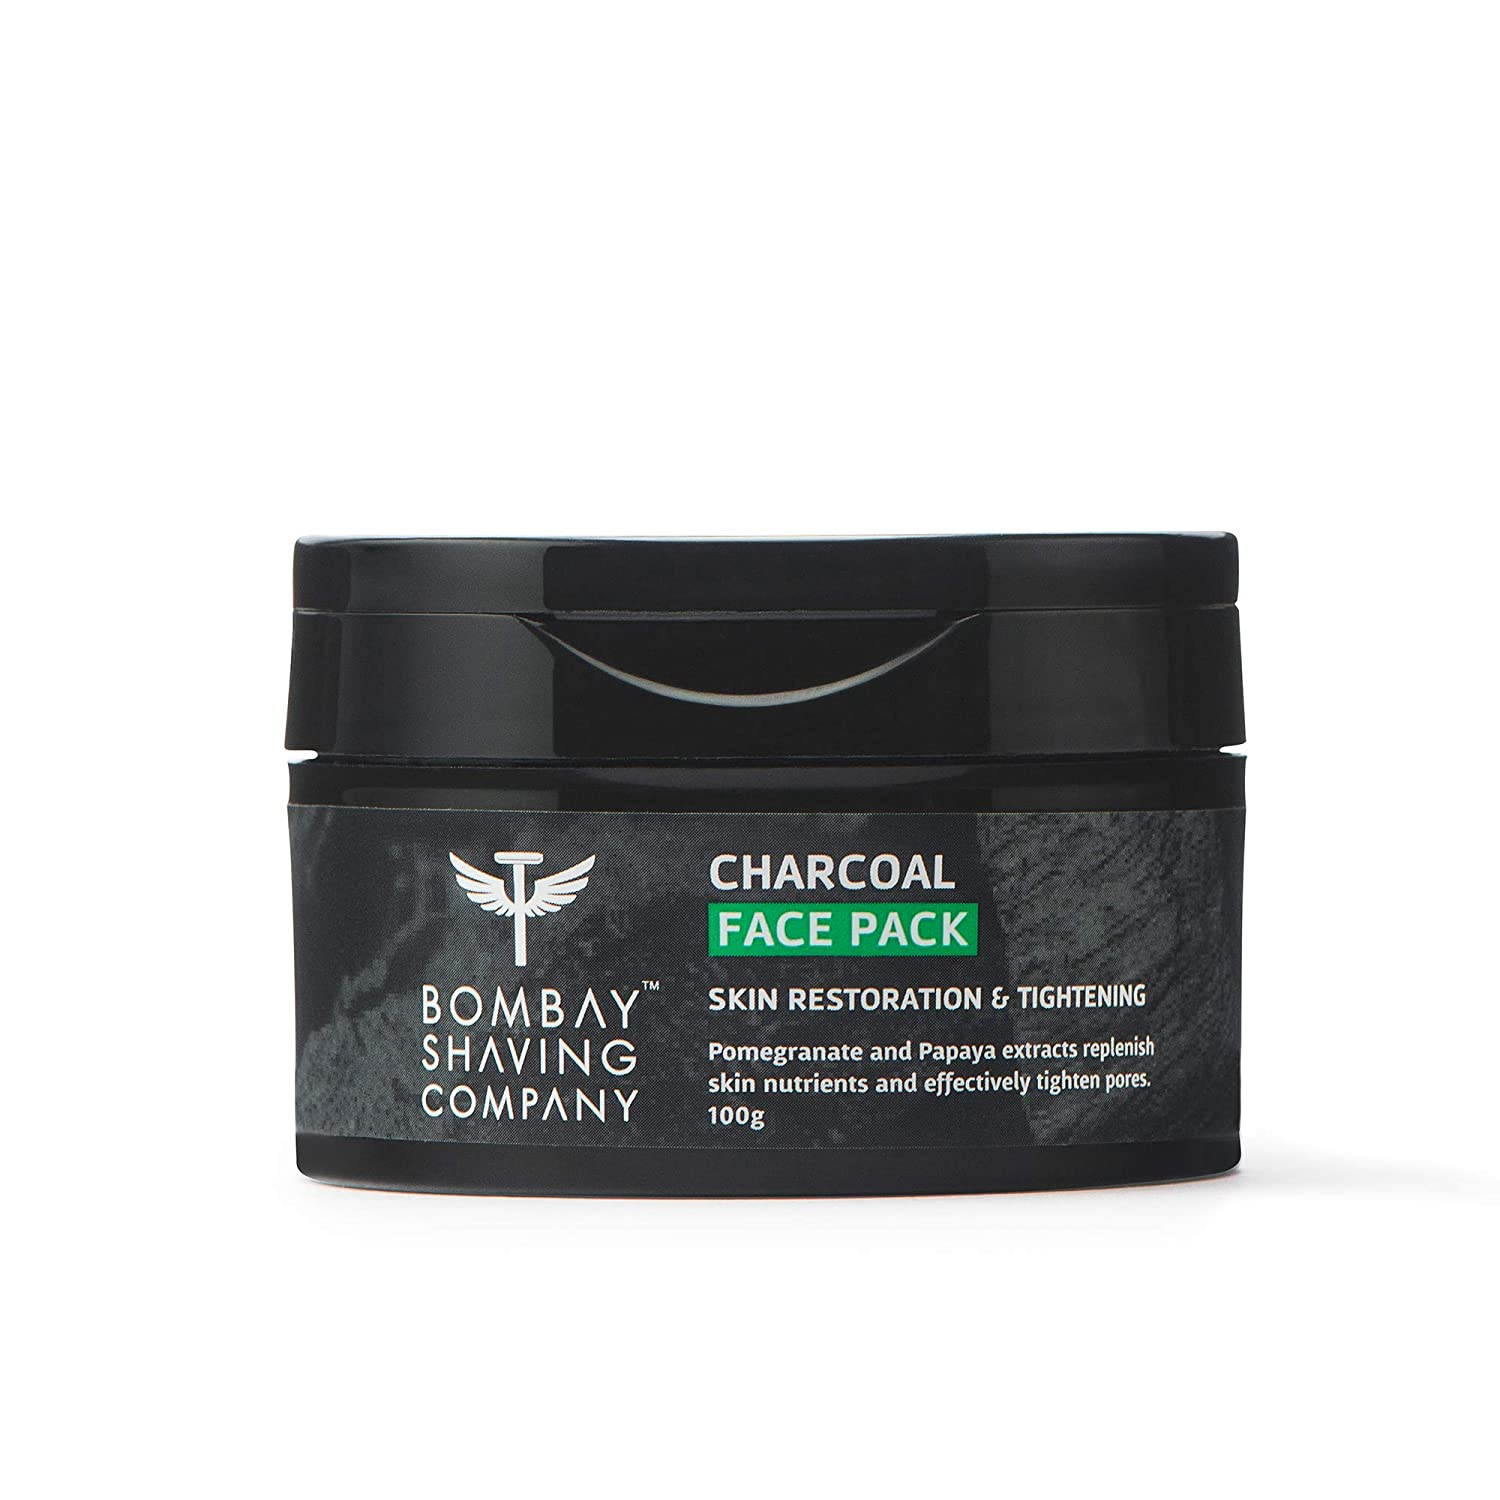 Bombay Shaving Company |  Charcoal Face Pack- 100g